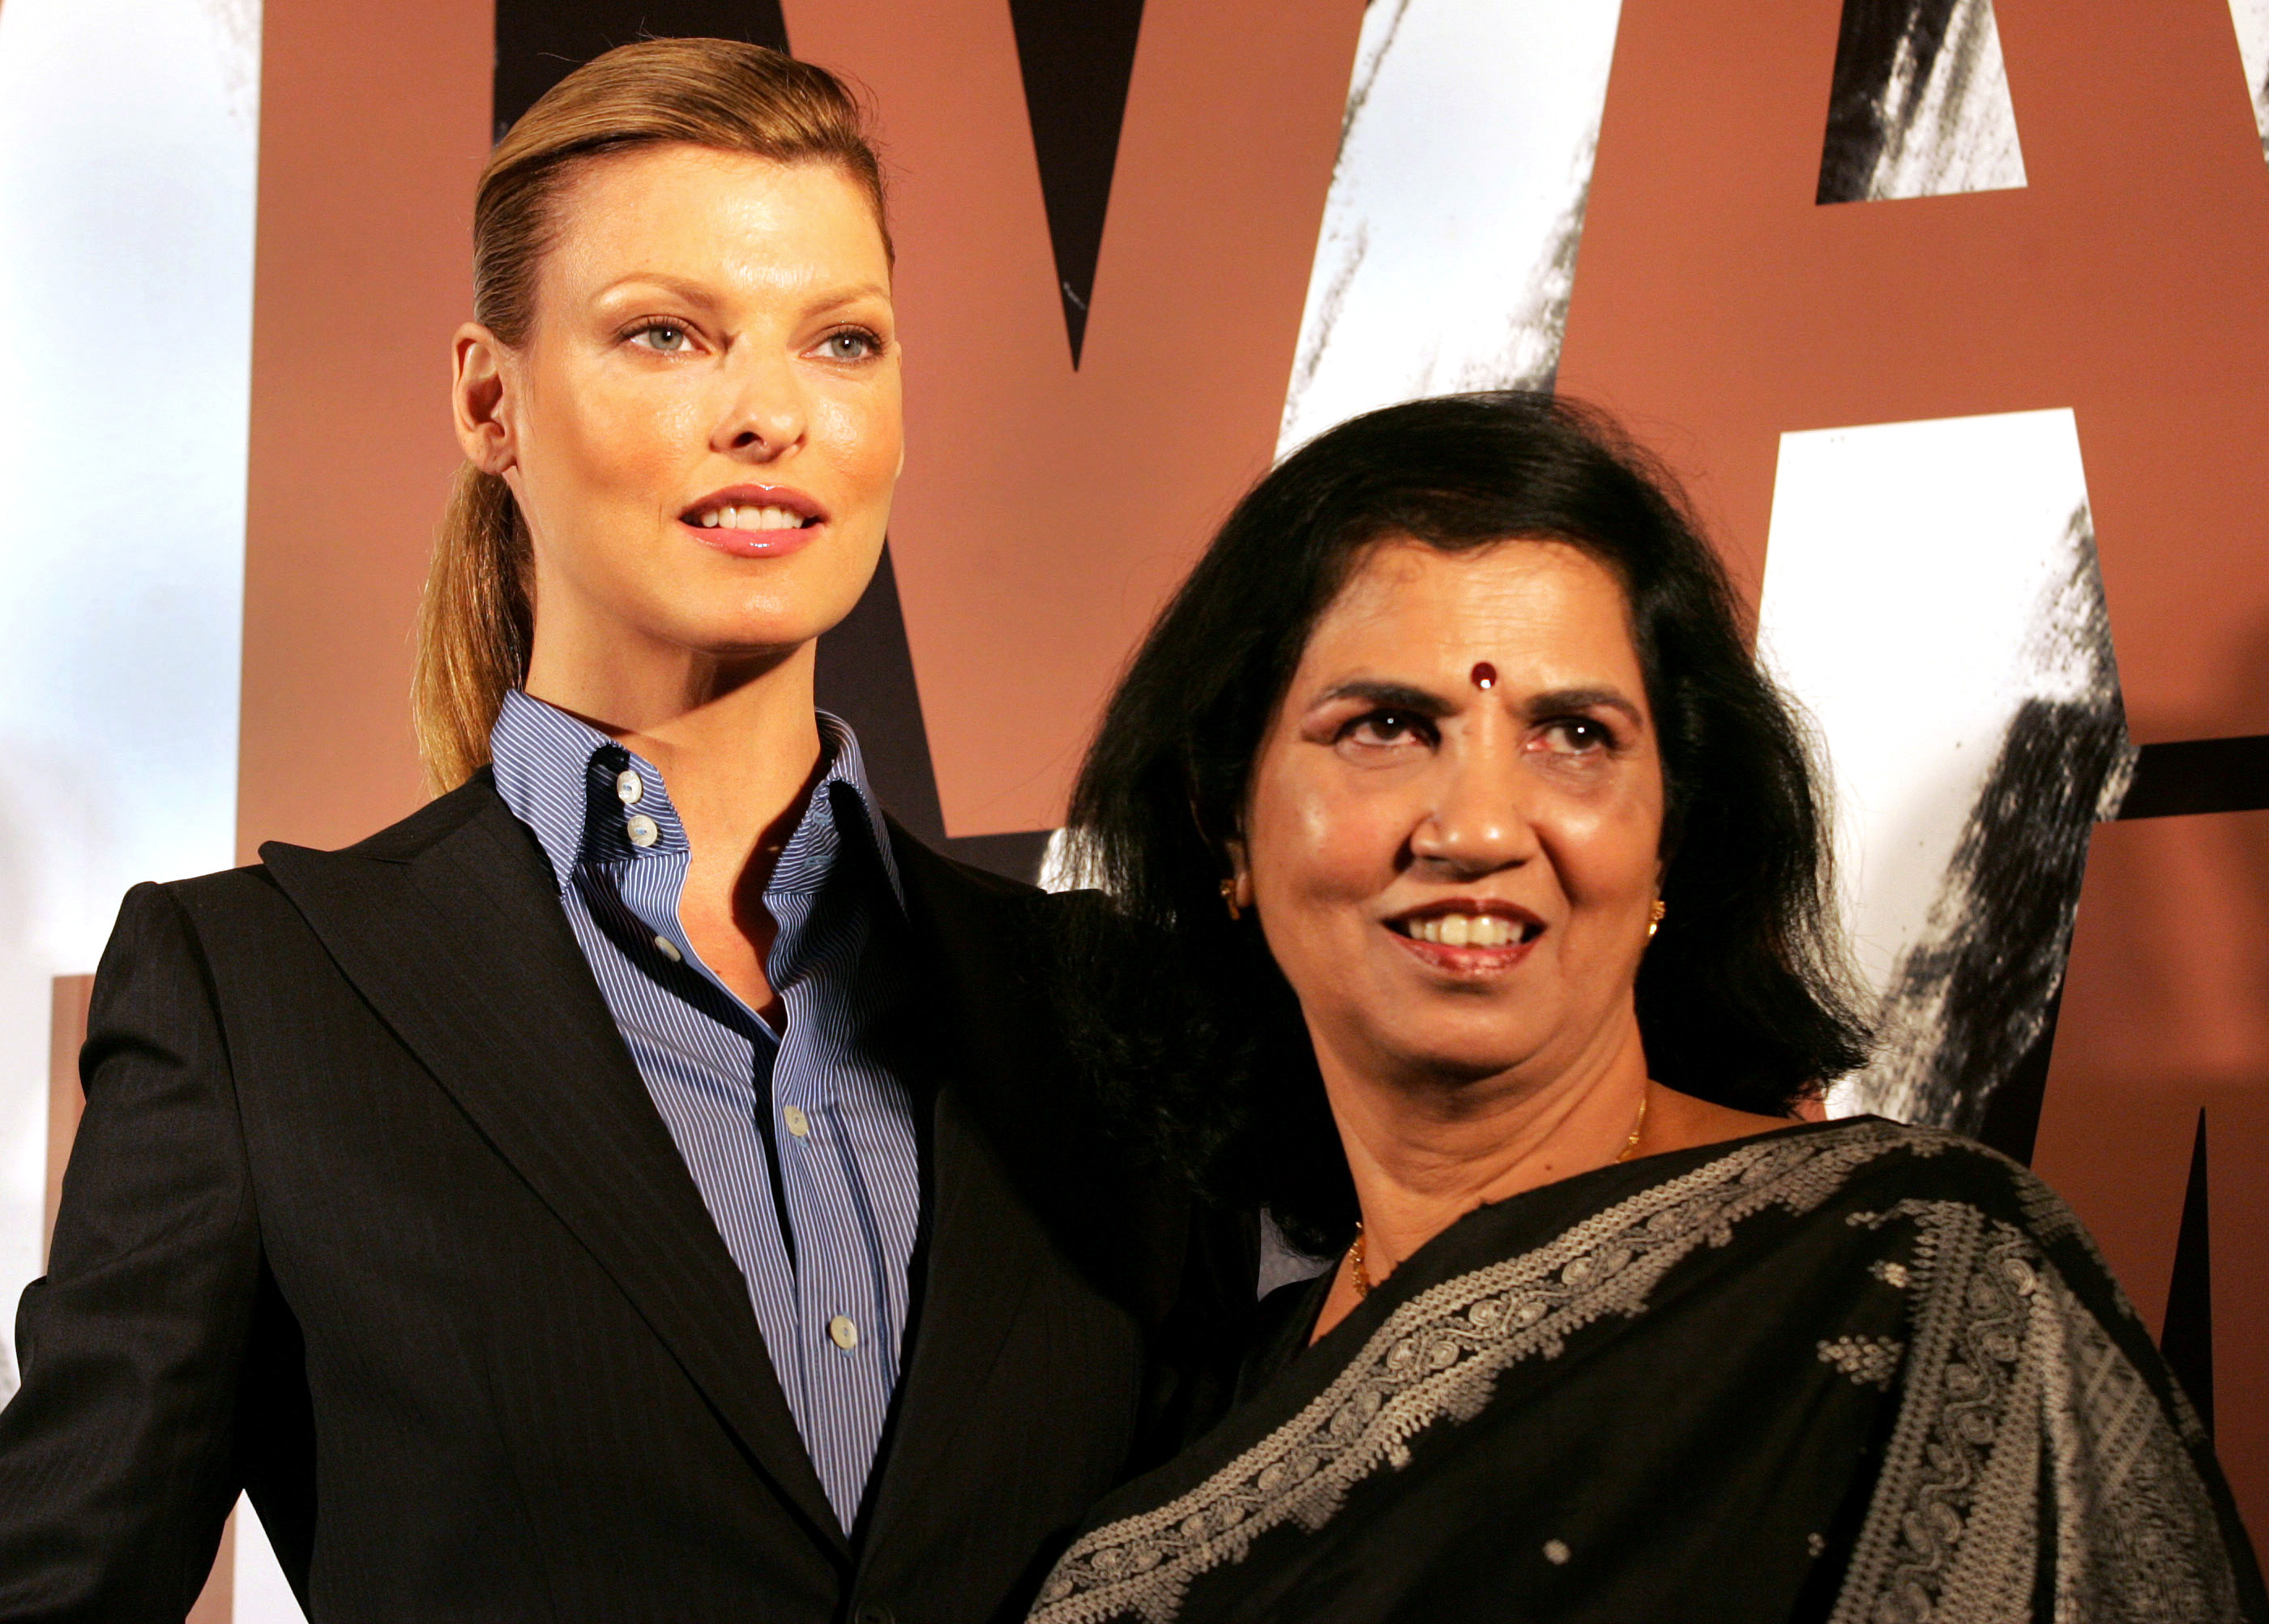 Canadian supermodel Linda Evangelista, left, and Director of Y.R. Gaitonde Center for AIDS Research and Education Suniti Solomon at a charity function in Mumbai, India on Oct. 21, 2005